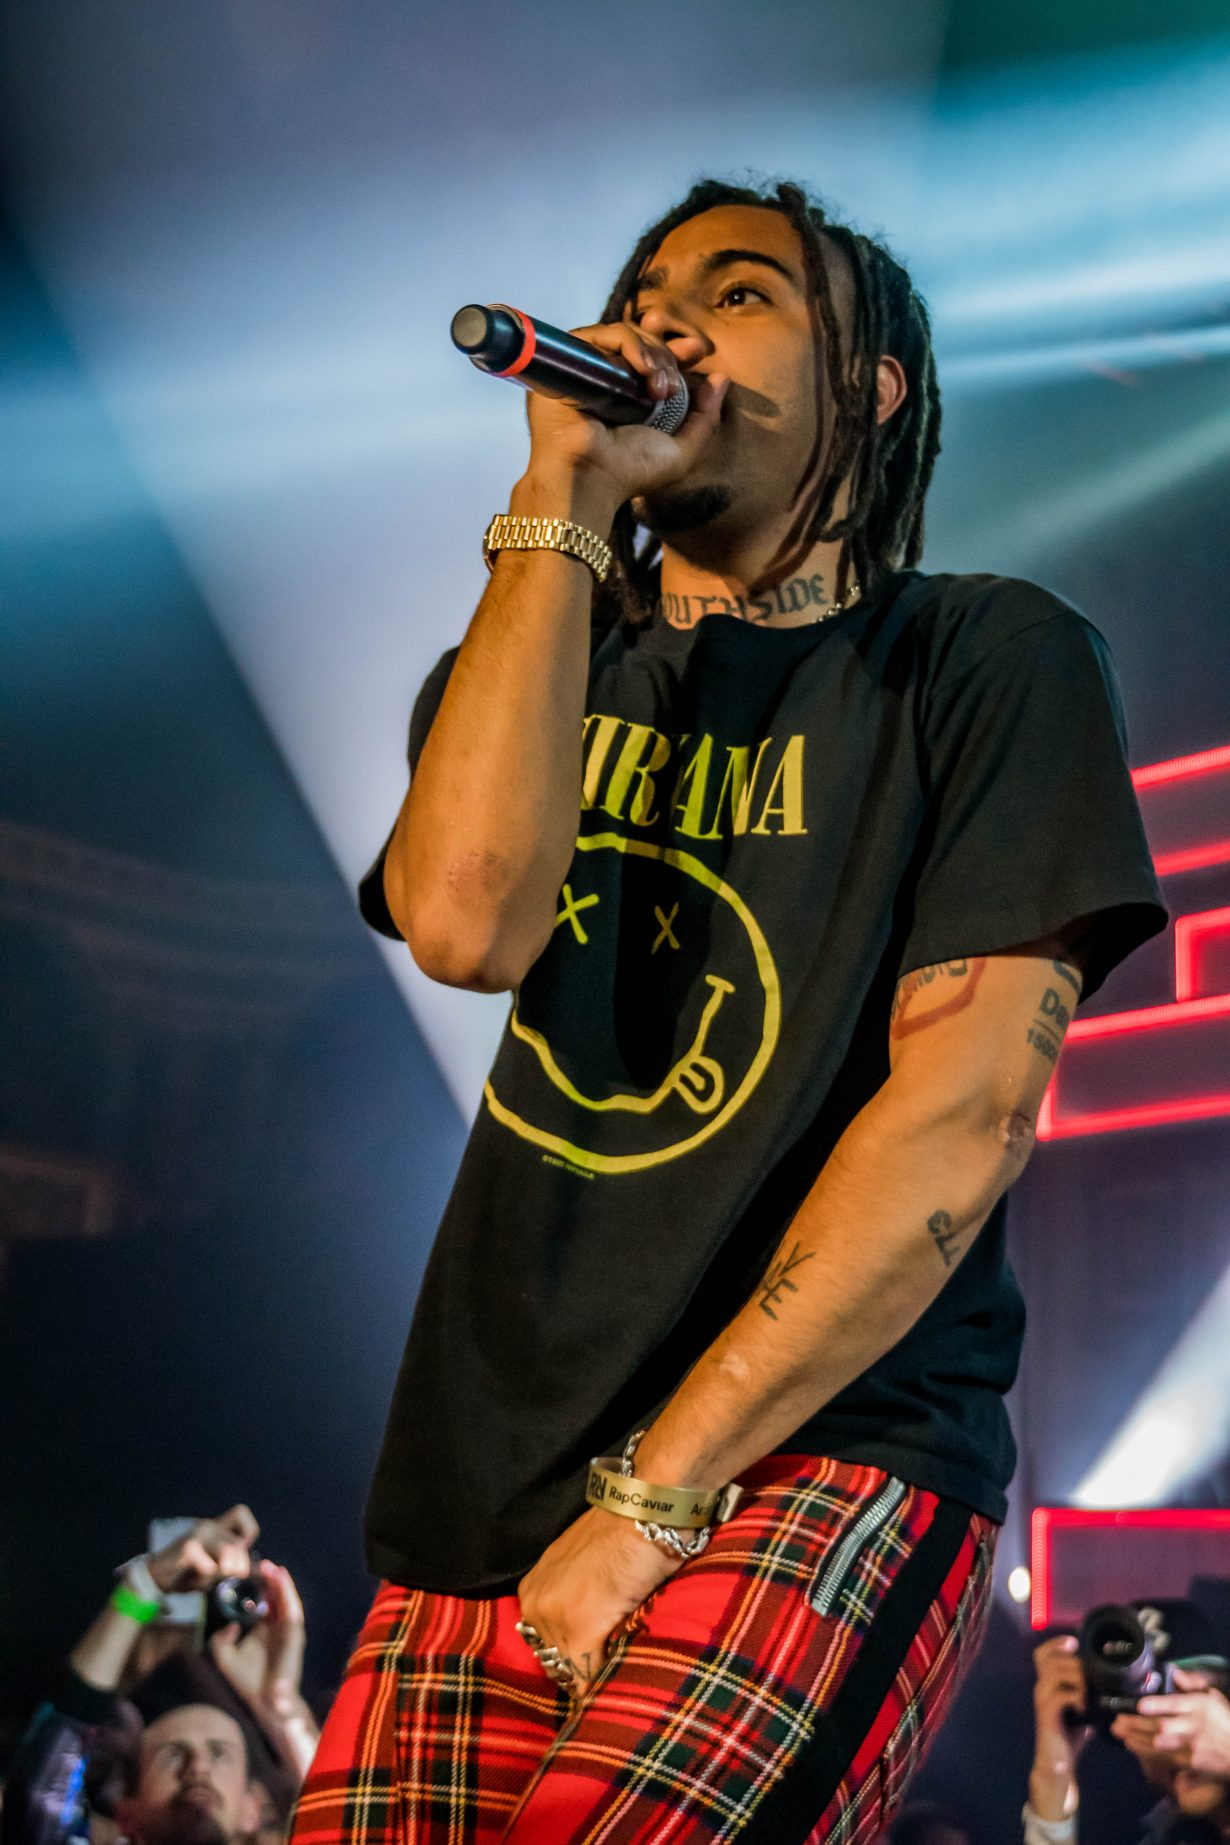 Vic Mensa. RapCaviar Aragon Ballroom 2017 Chicago Il. Photo by Kevin Baker 4 1230x1845 RapCaviar Sets Chicago On Fire with Lil Uzi Vert, Playboi Carti, Cardi B, DJ Drama and More